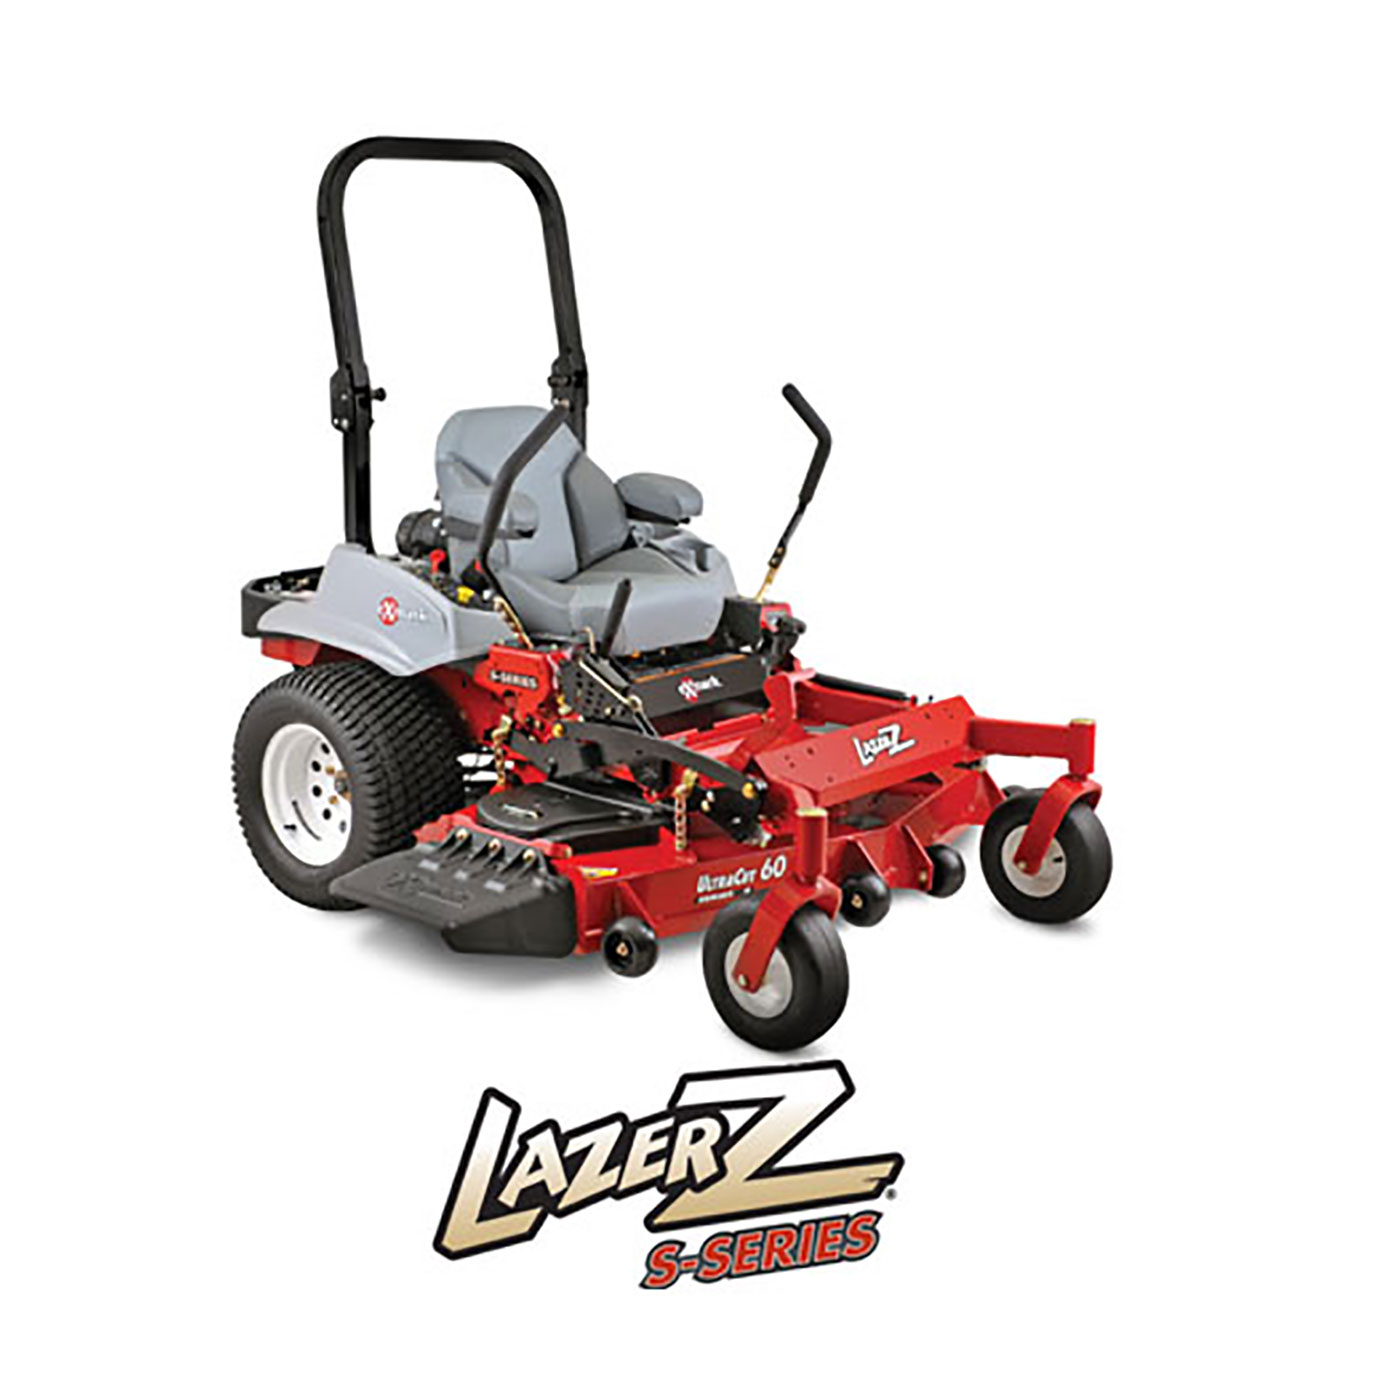 Exmark Lazer Z 60 inch E-Series Zero-Turn Mower